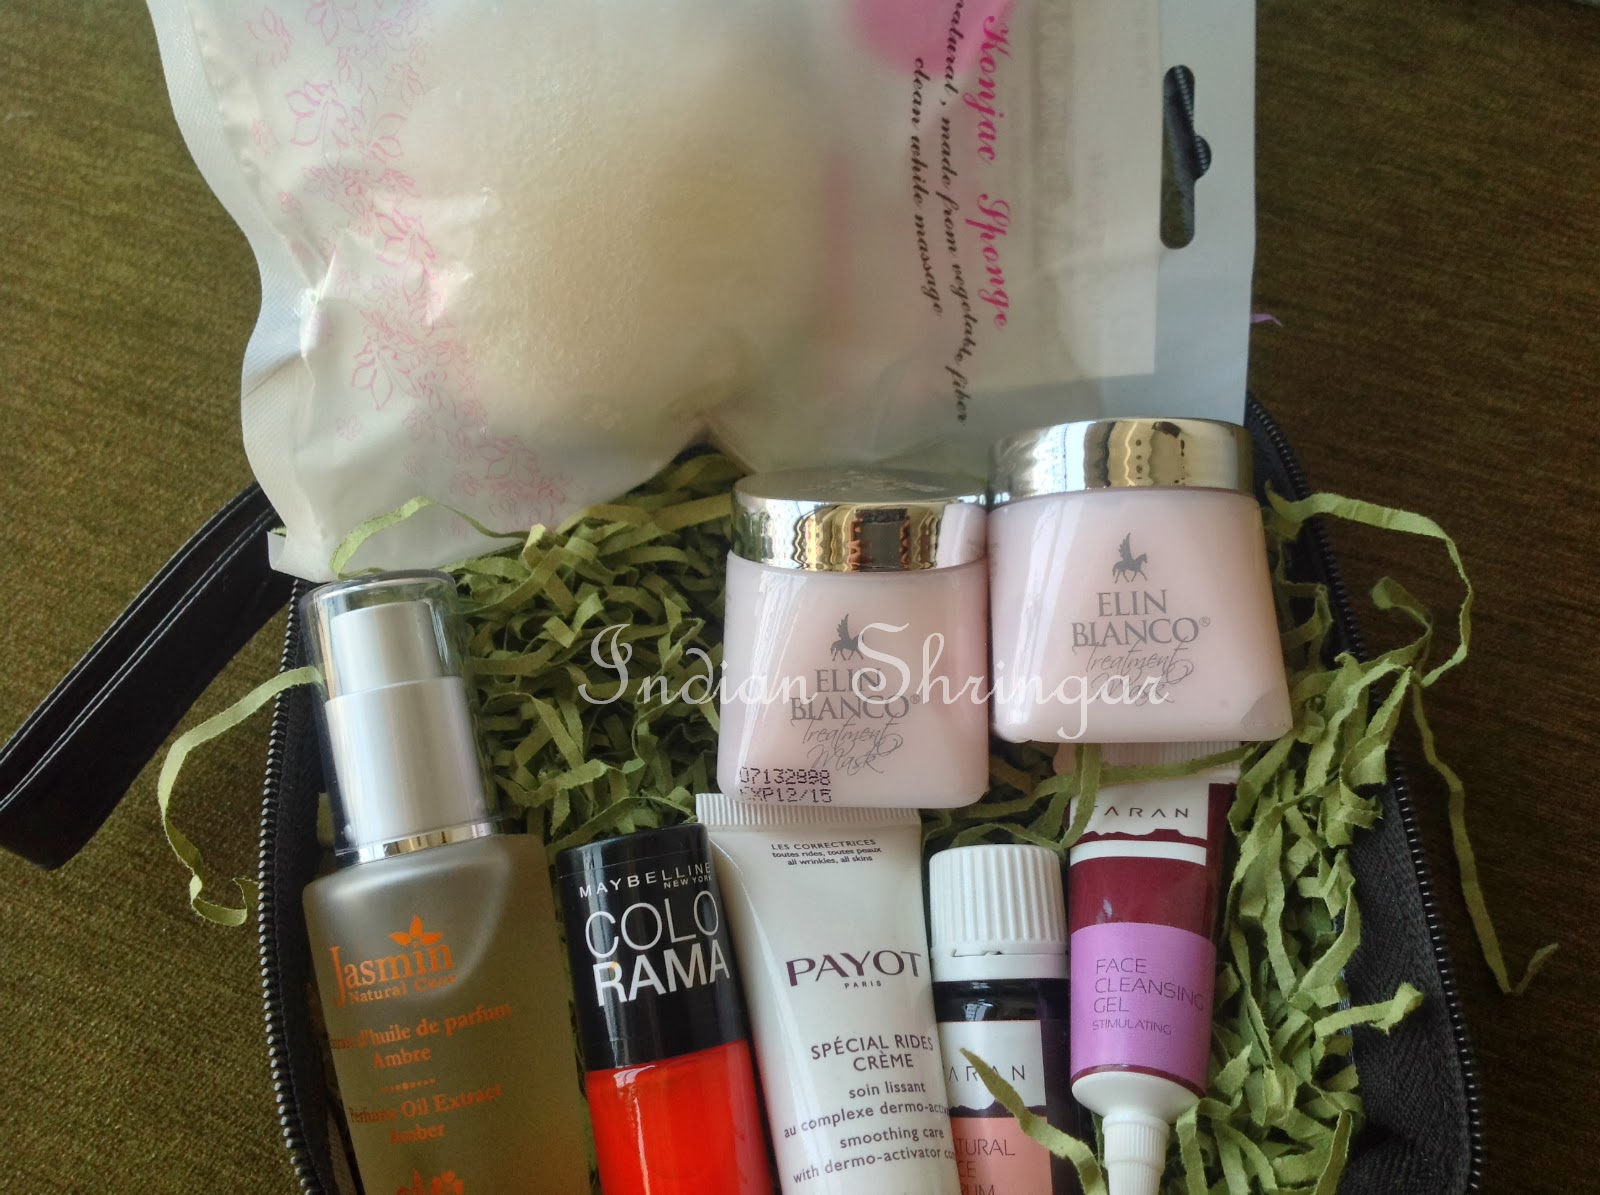 Glam Guru: Beauty Box from Israel